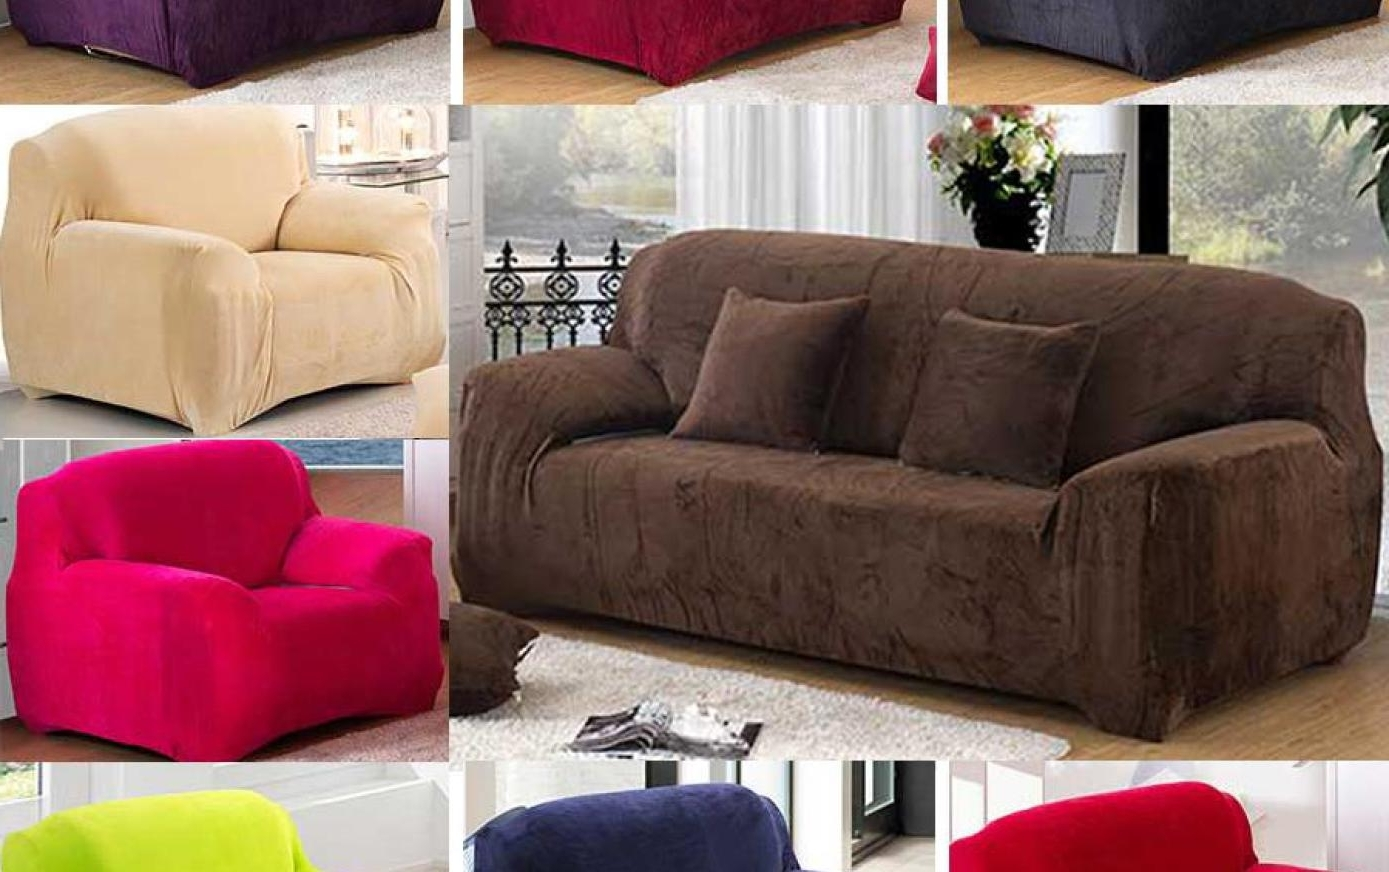 Rowe Sofas Sofas With Removable Washable Covers Ikea Ektorp Sofa Regarding Fashionable Sofas With Washable Covers (View 12 of 20)